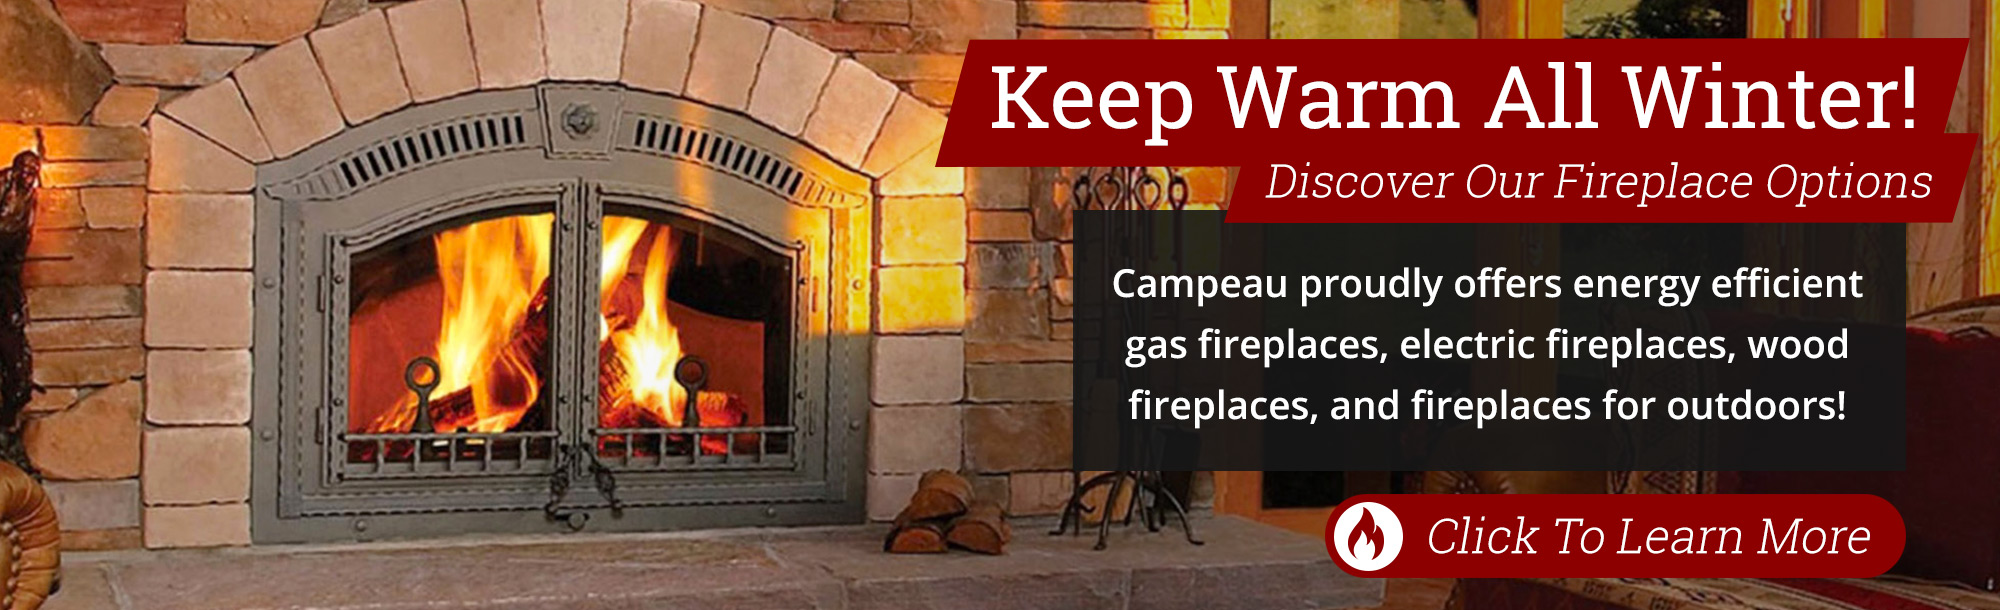 Campeau Heating - Fireplaces